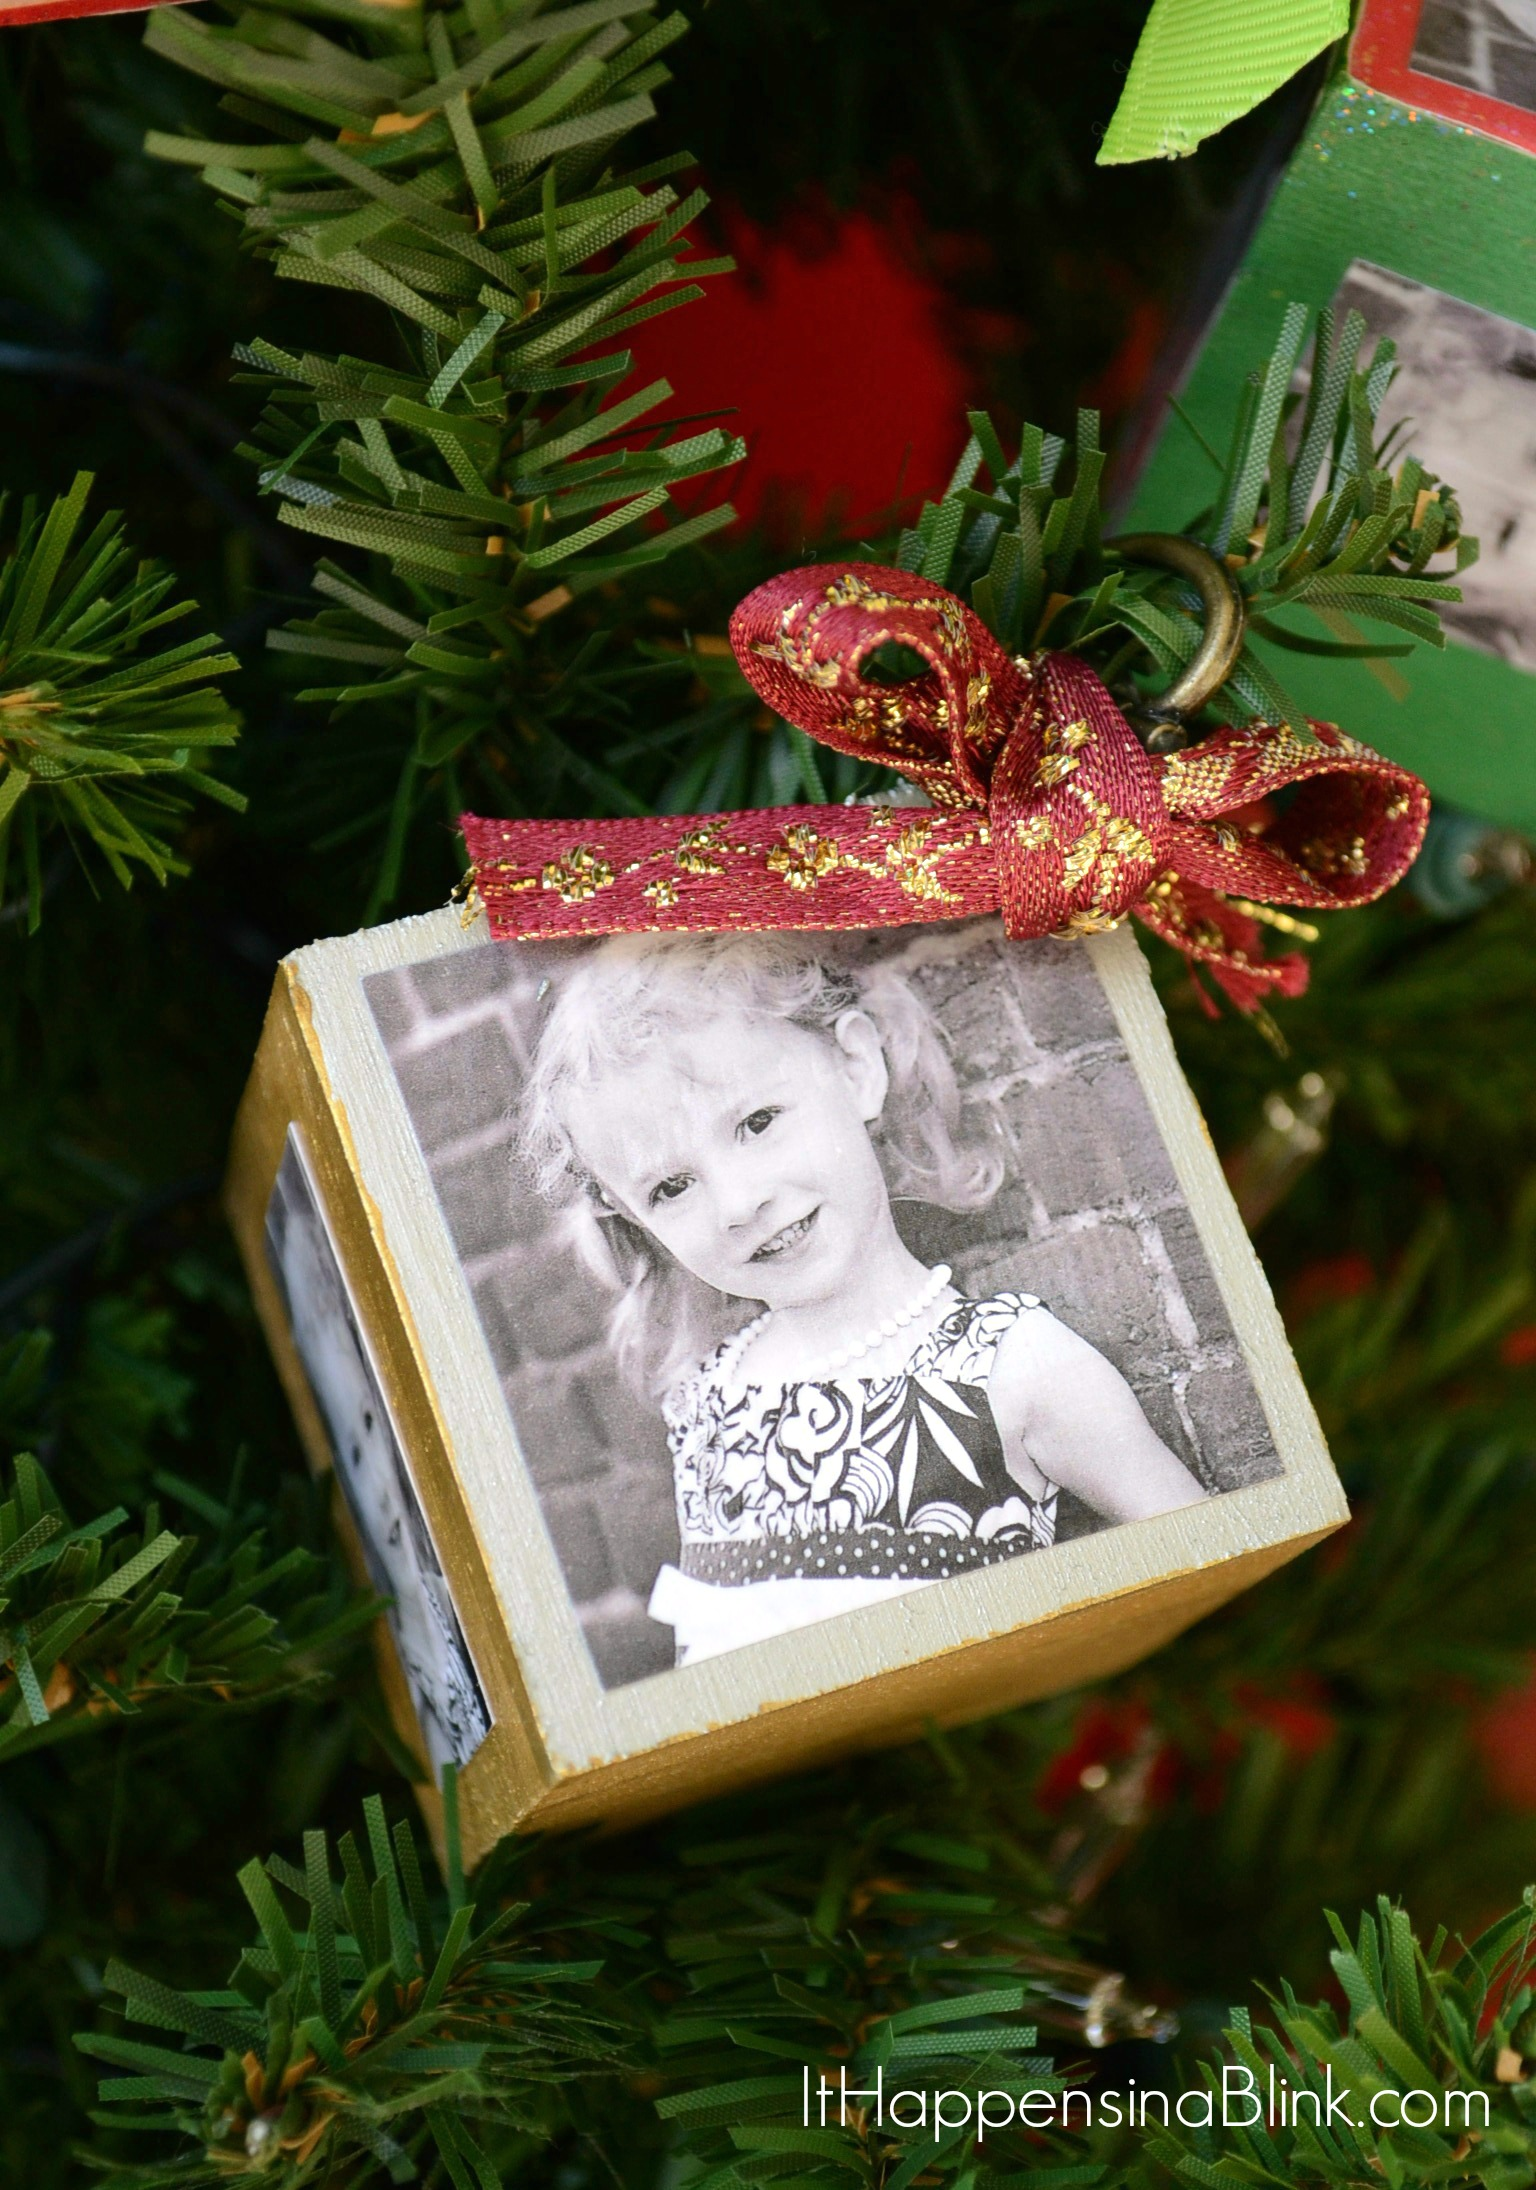 Diy Photo Block Christmas Ornaments  Ithappensinablink  Make Your Own  Photo Block Ornaments